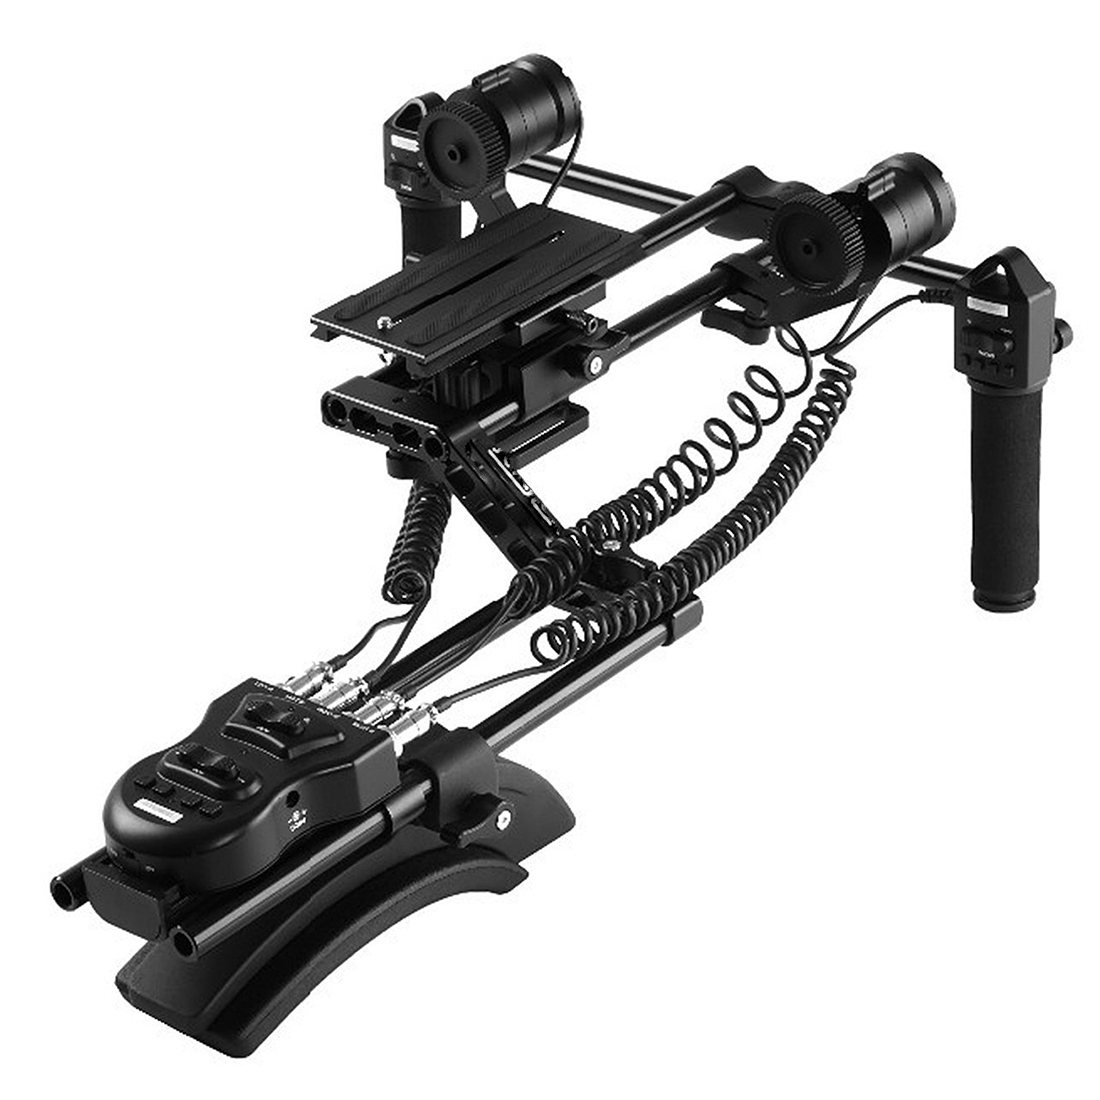 Top Deals Focus Zoom Control Video Shoulder Rig for Canon 5D2 Mark III 6D 600D Nikon D7000 Panasonic Camcorder HD DSLR Cameras yelangu professional dslr dual handle shoulder mount rig video dv accessories for canon 5d2 5d3 7d 70d 60d 5d mark iii d810 d610